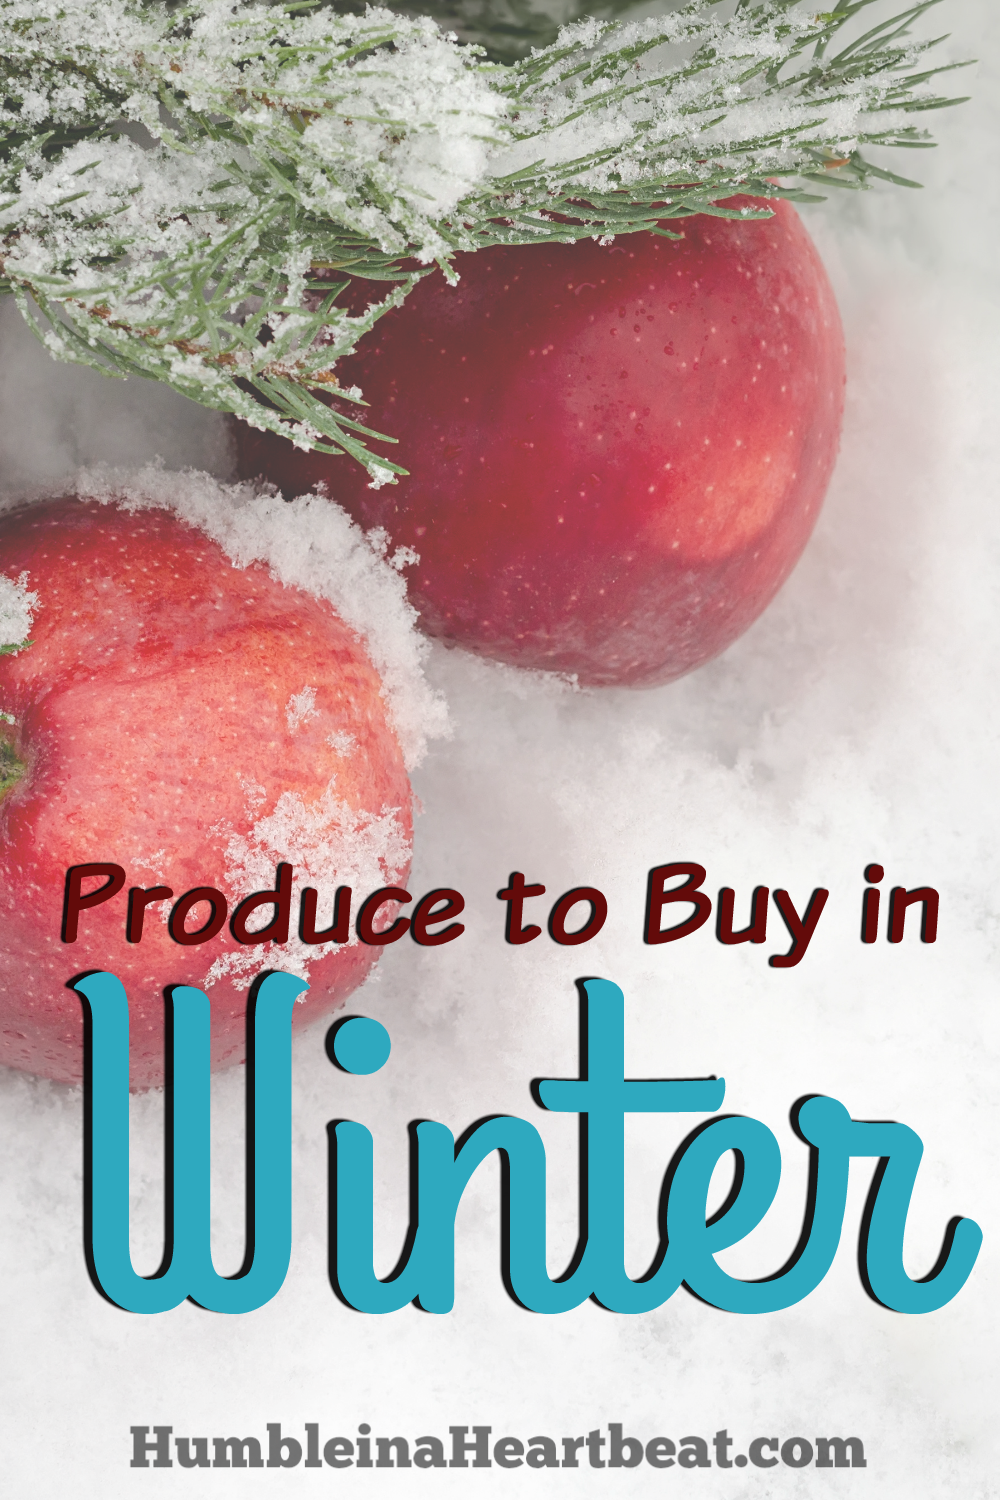 Buying in season not only saves money, but it tastes better, too! If you'd like to add more variety to your family's meals, be sure to reference this list of produce that is in season in winter.